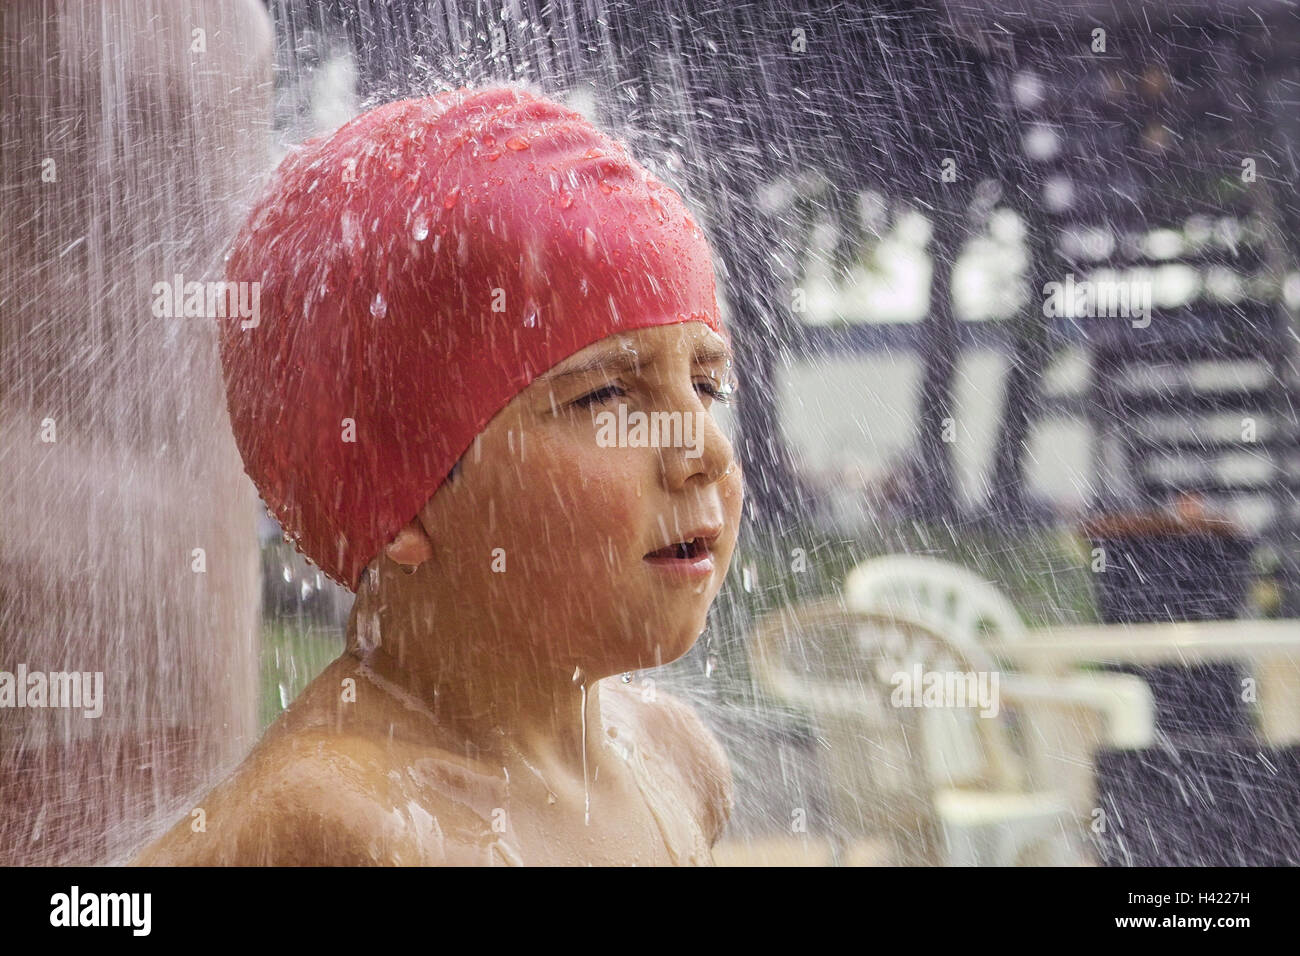 8ea0f5e30b6 Outdoor swimming pool, douche, boy, bathing cap, red, portrait, side view,  swimming-pool, outside douches, child, infant, 3 - 5 years, bathing cap,  wash, ...